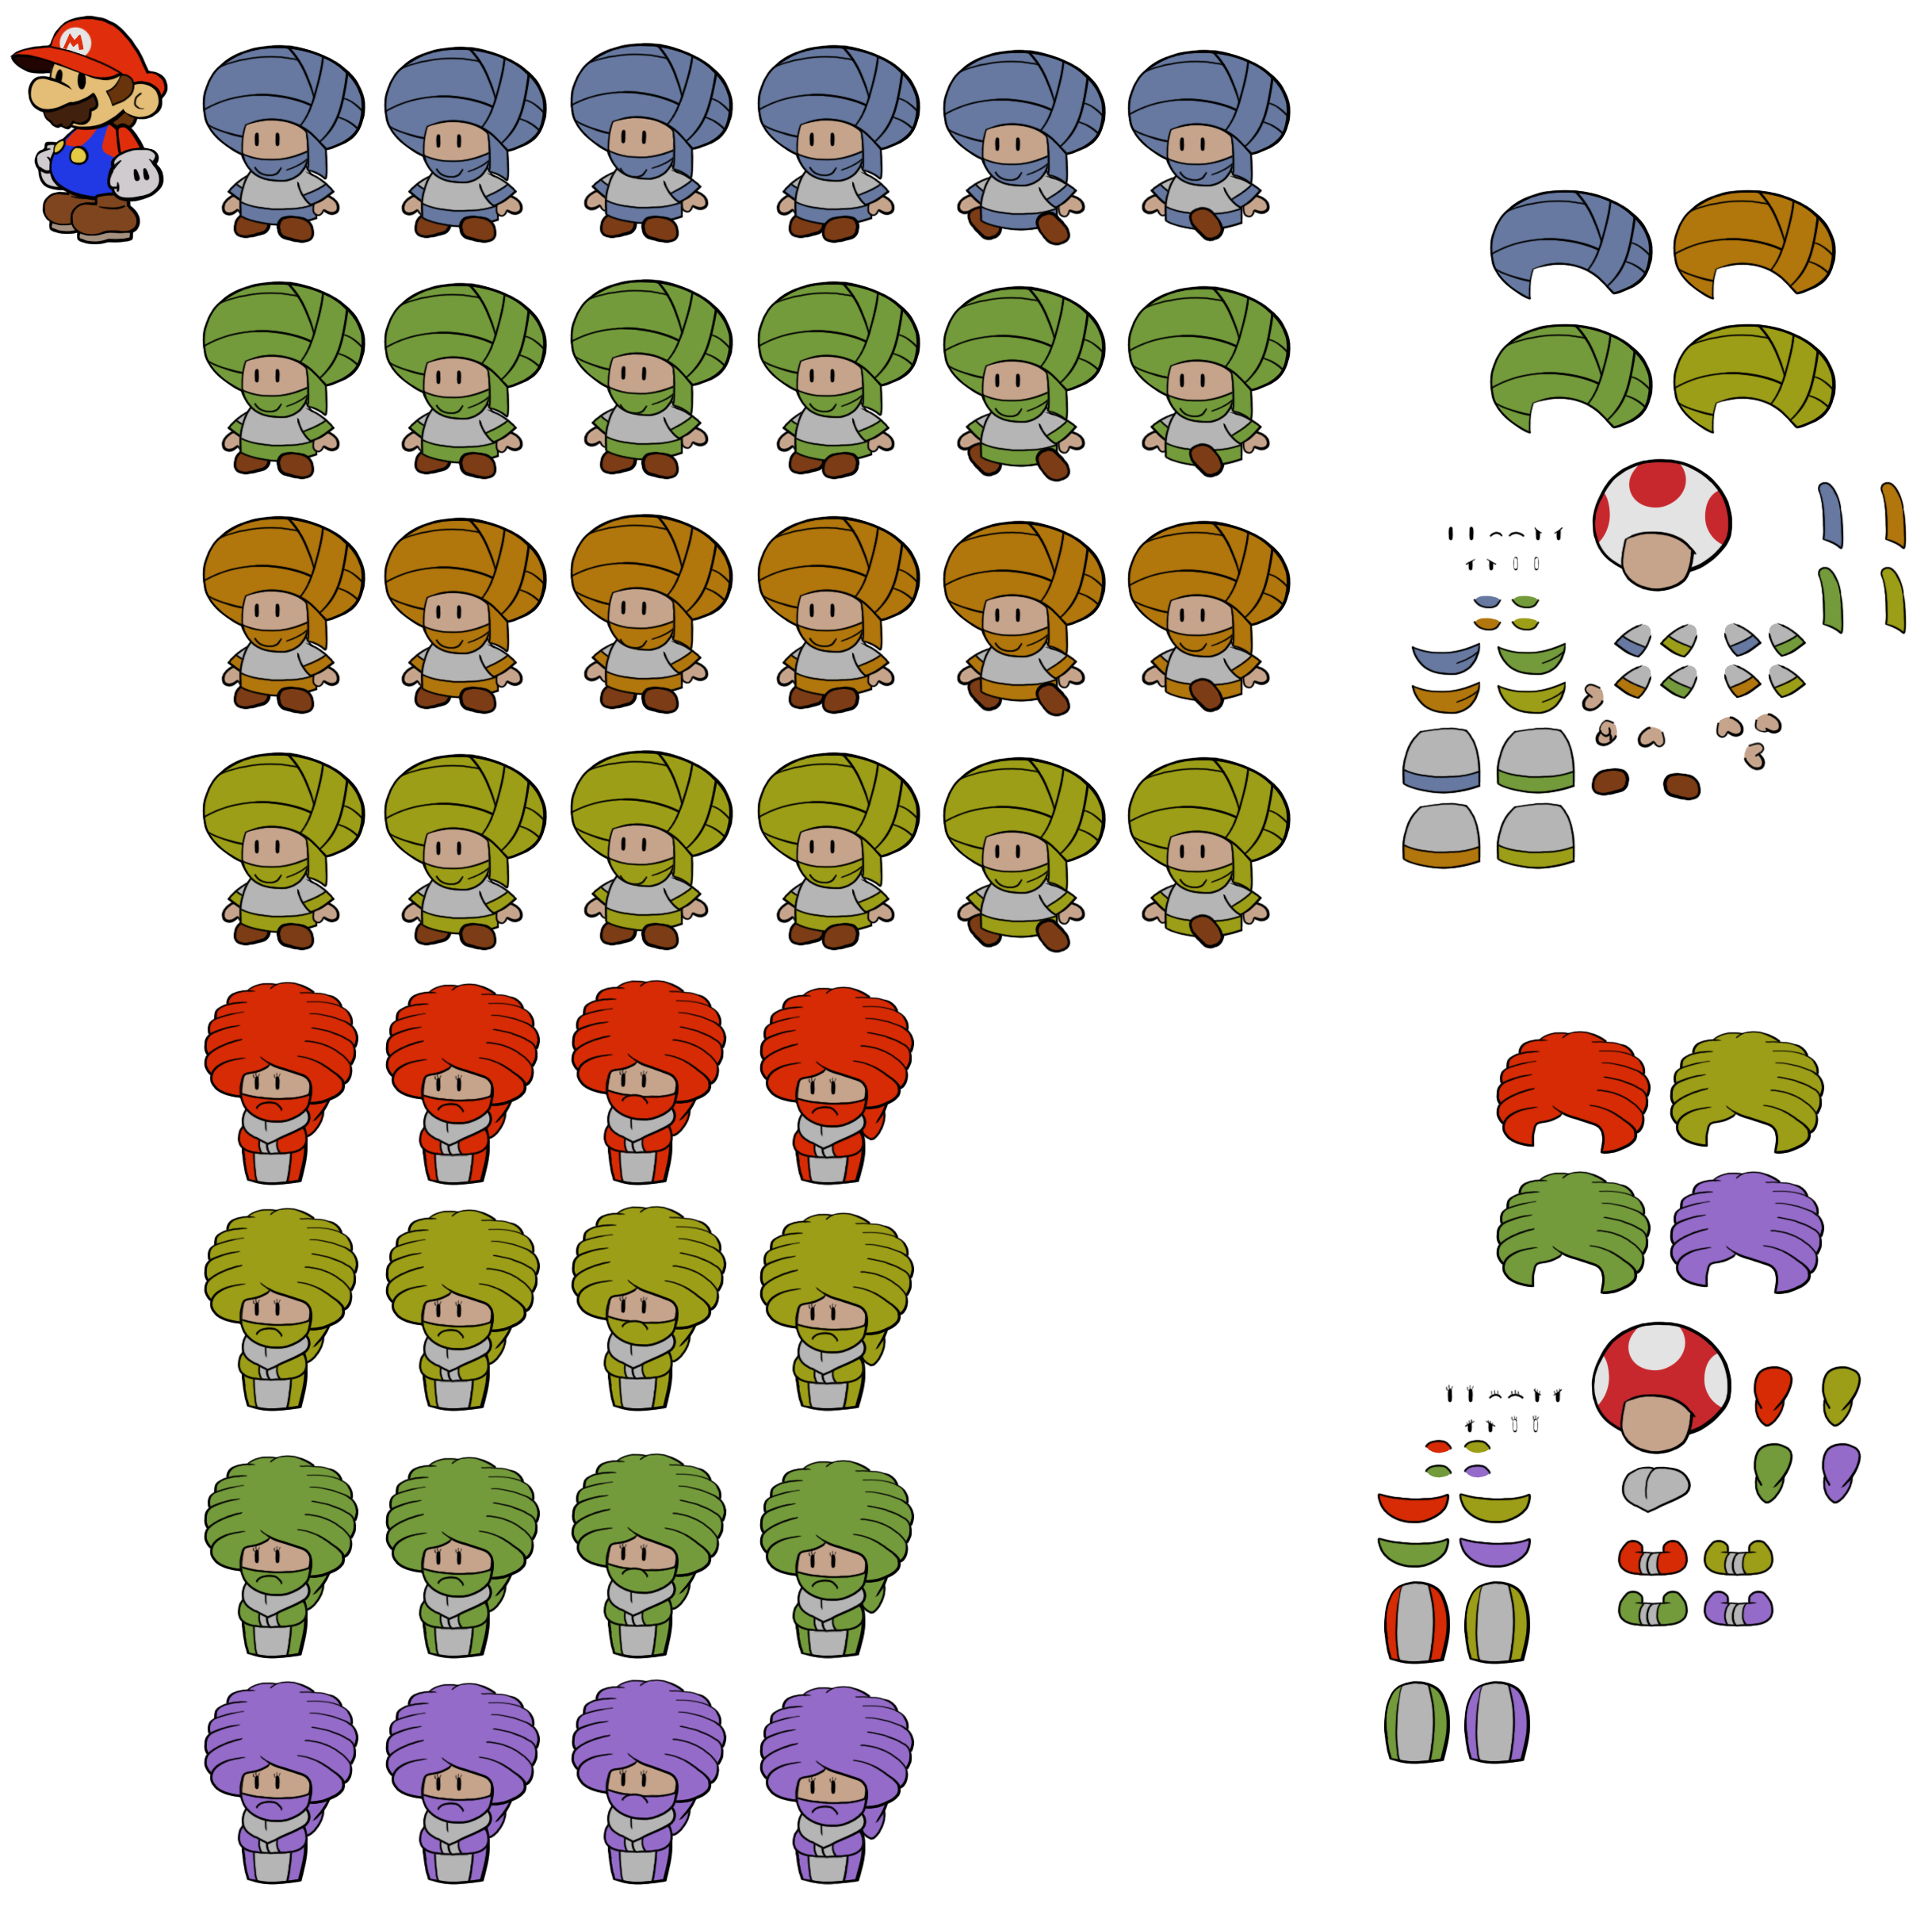 Dry Dry Toads (Paper Mario Style)